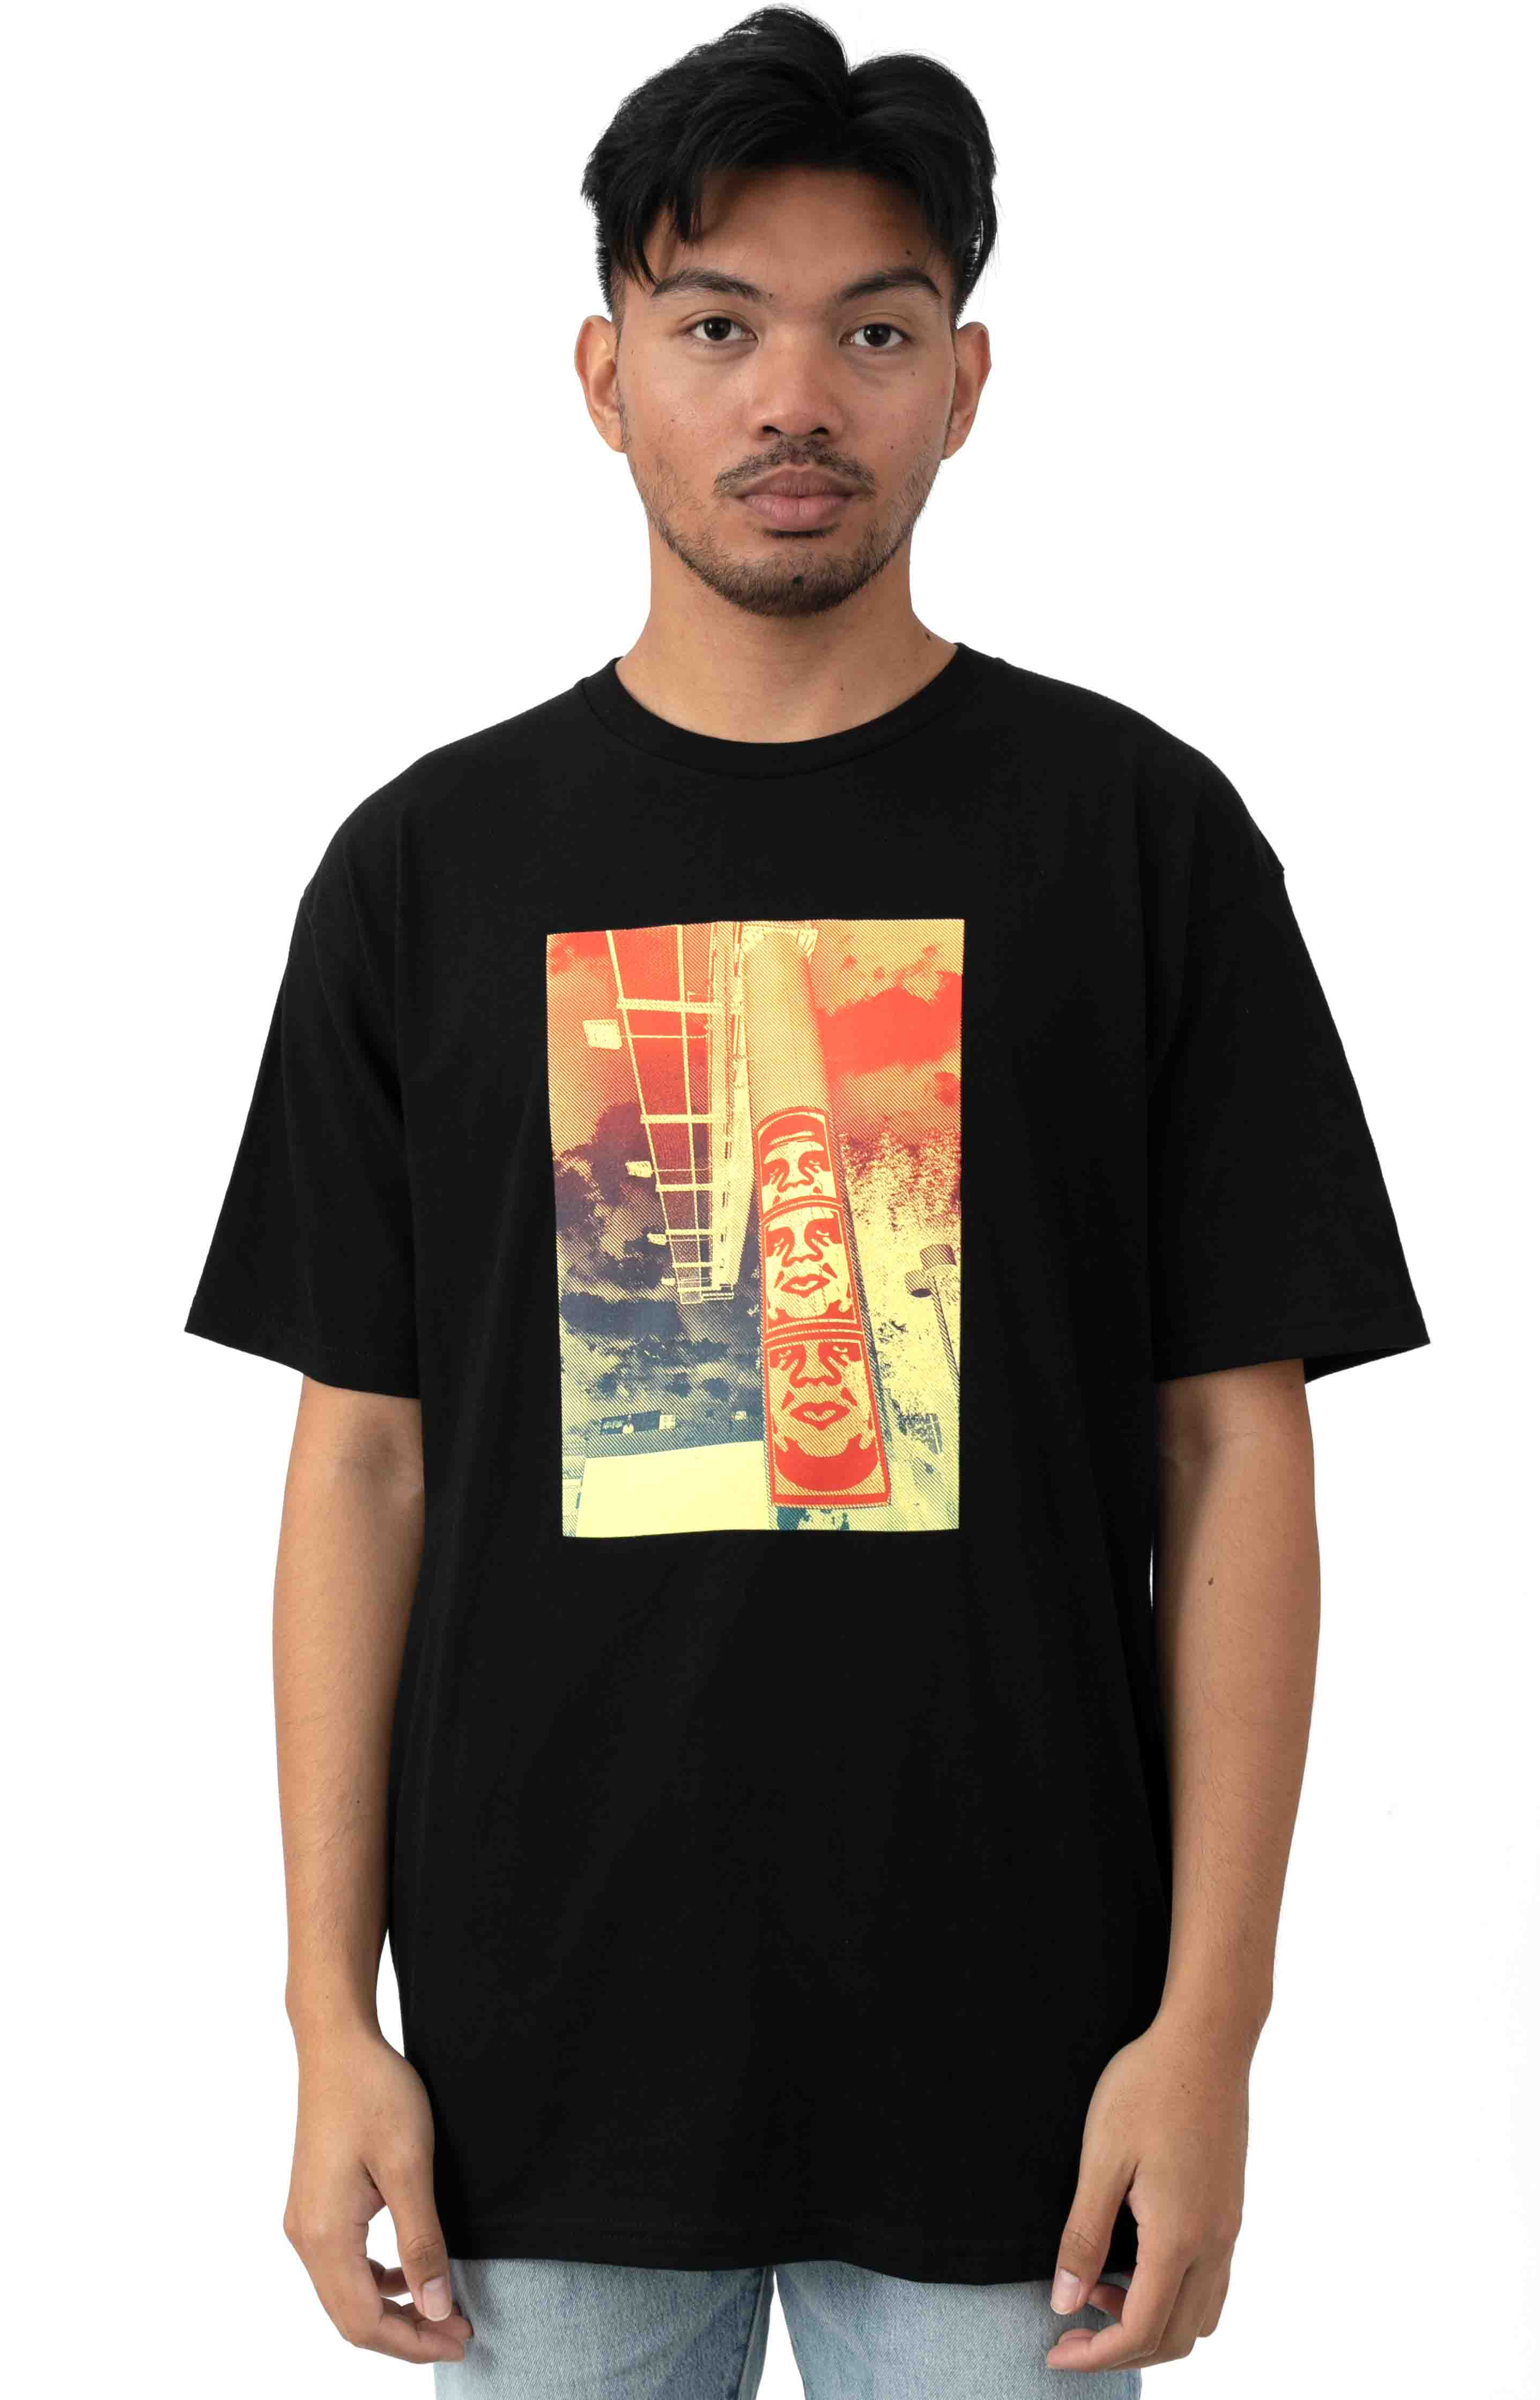 3 Face Clouds T-Shirt - Black